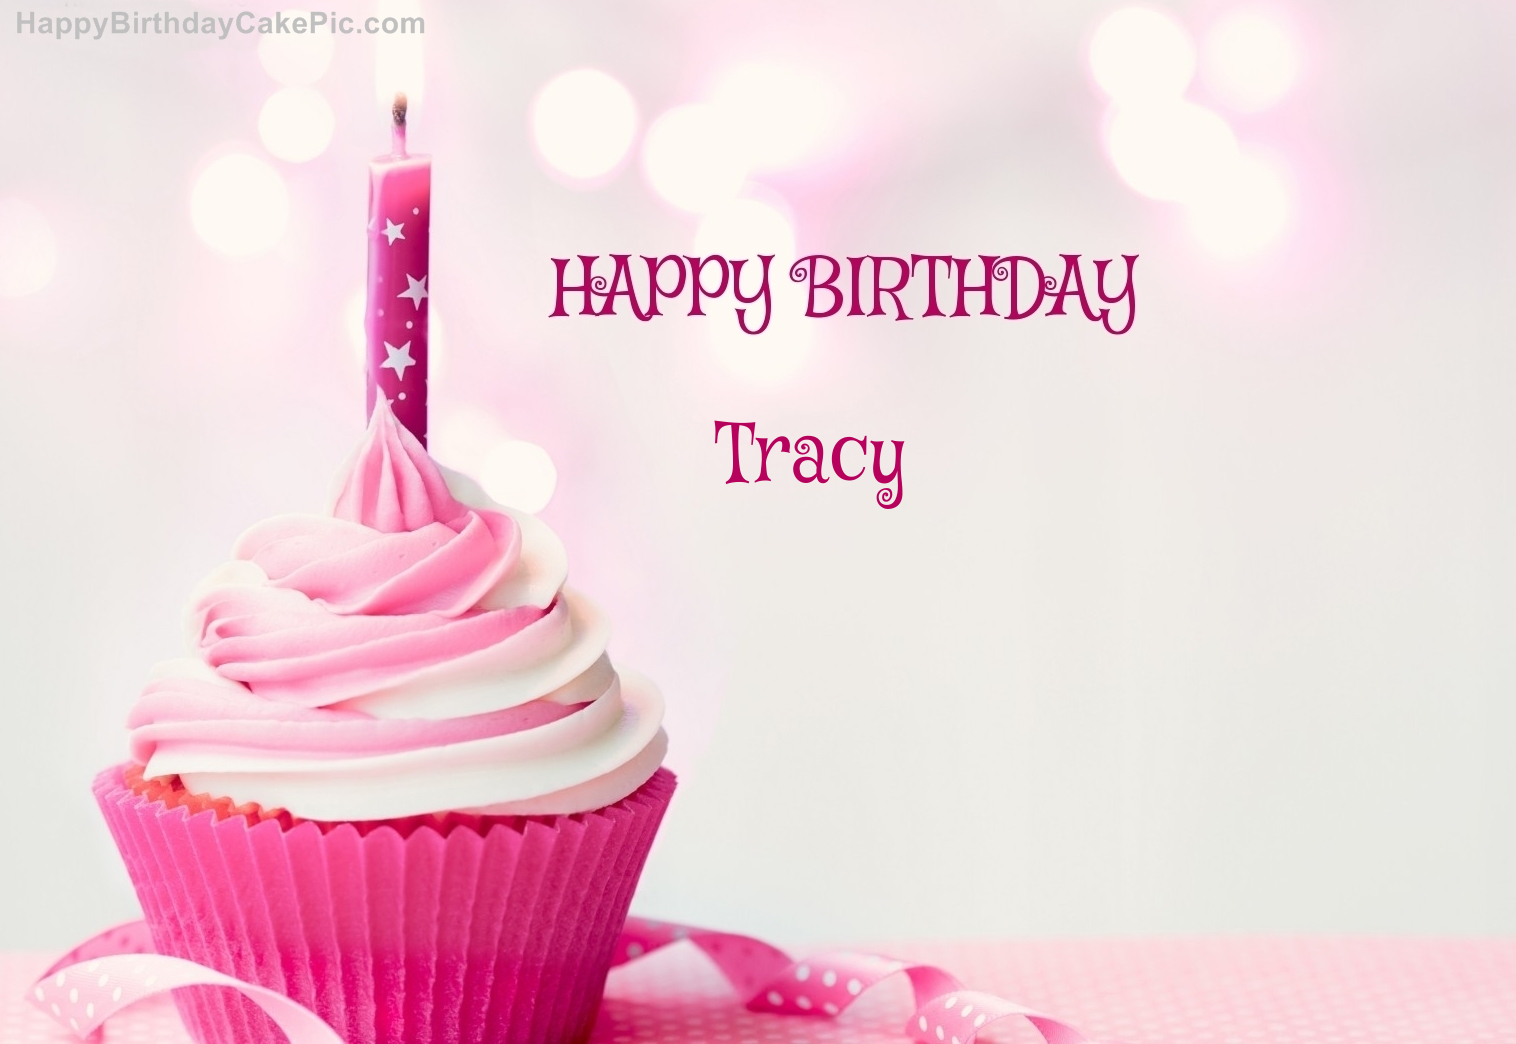 Happy Birthday Cupcake Candle Pink Cake For Tracy